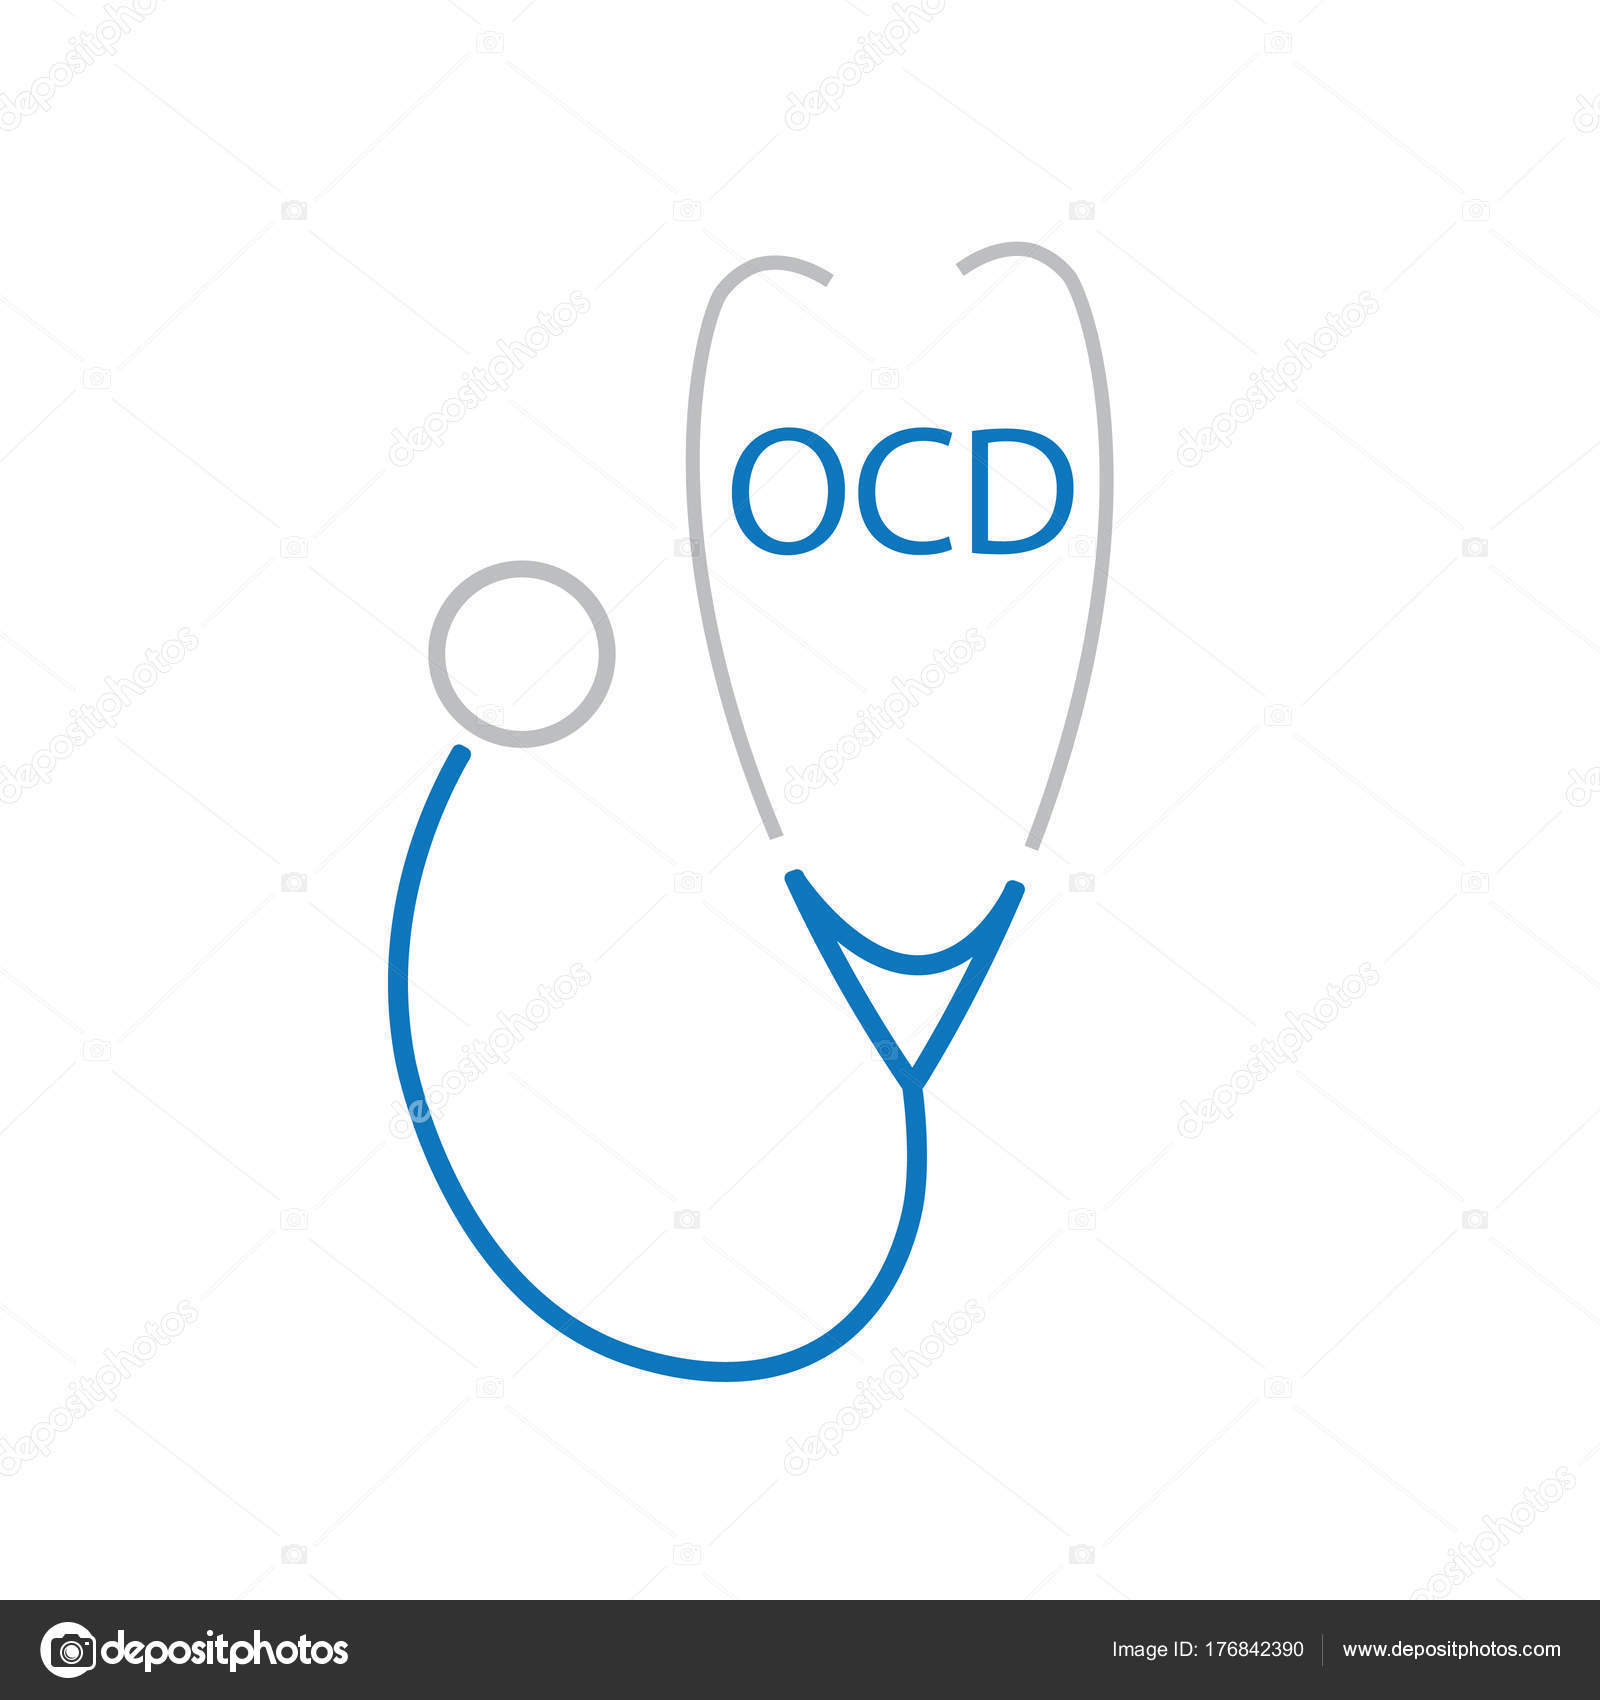 Ocd Obsessive Compulsive Disorder Acronym And